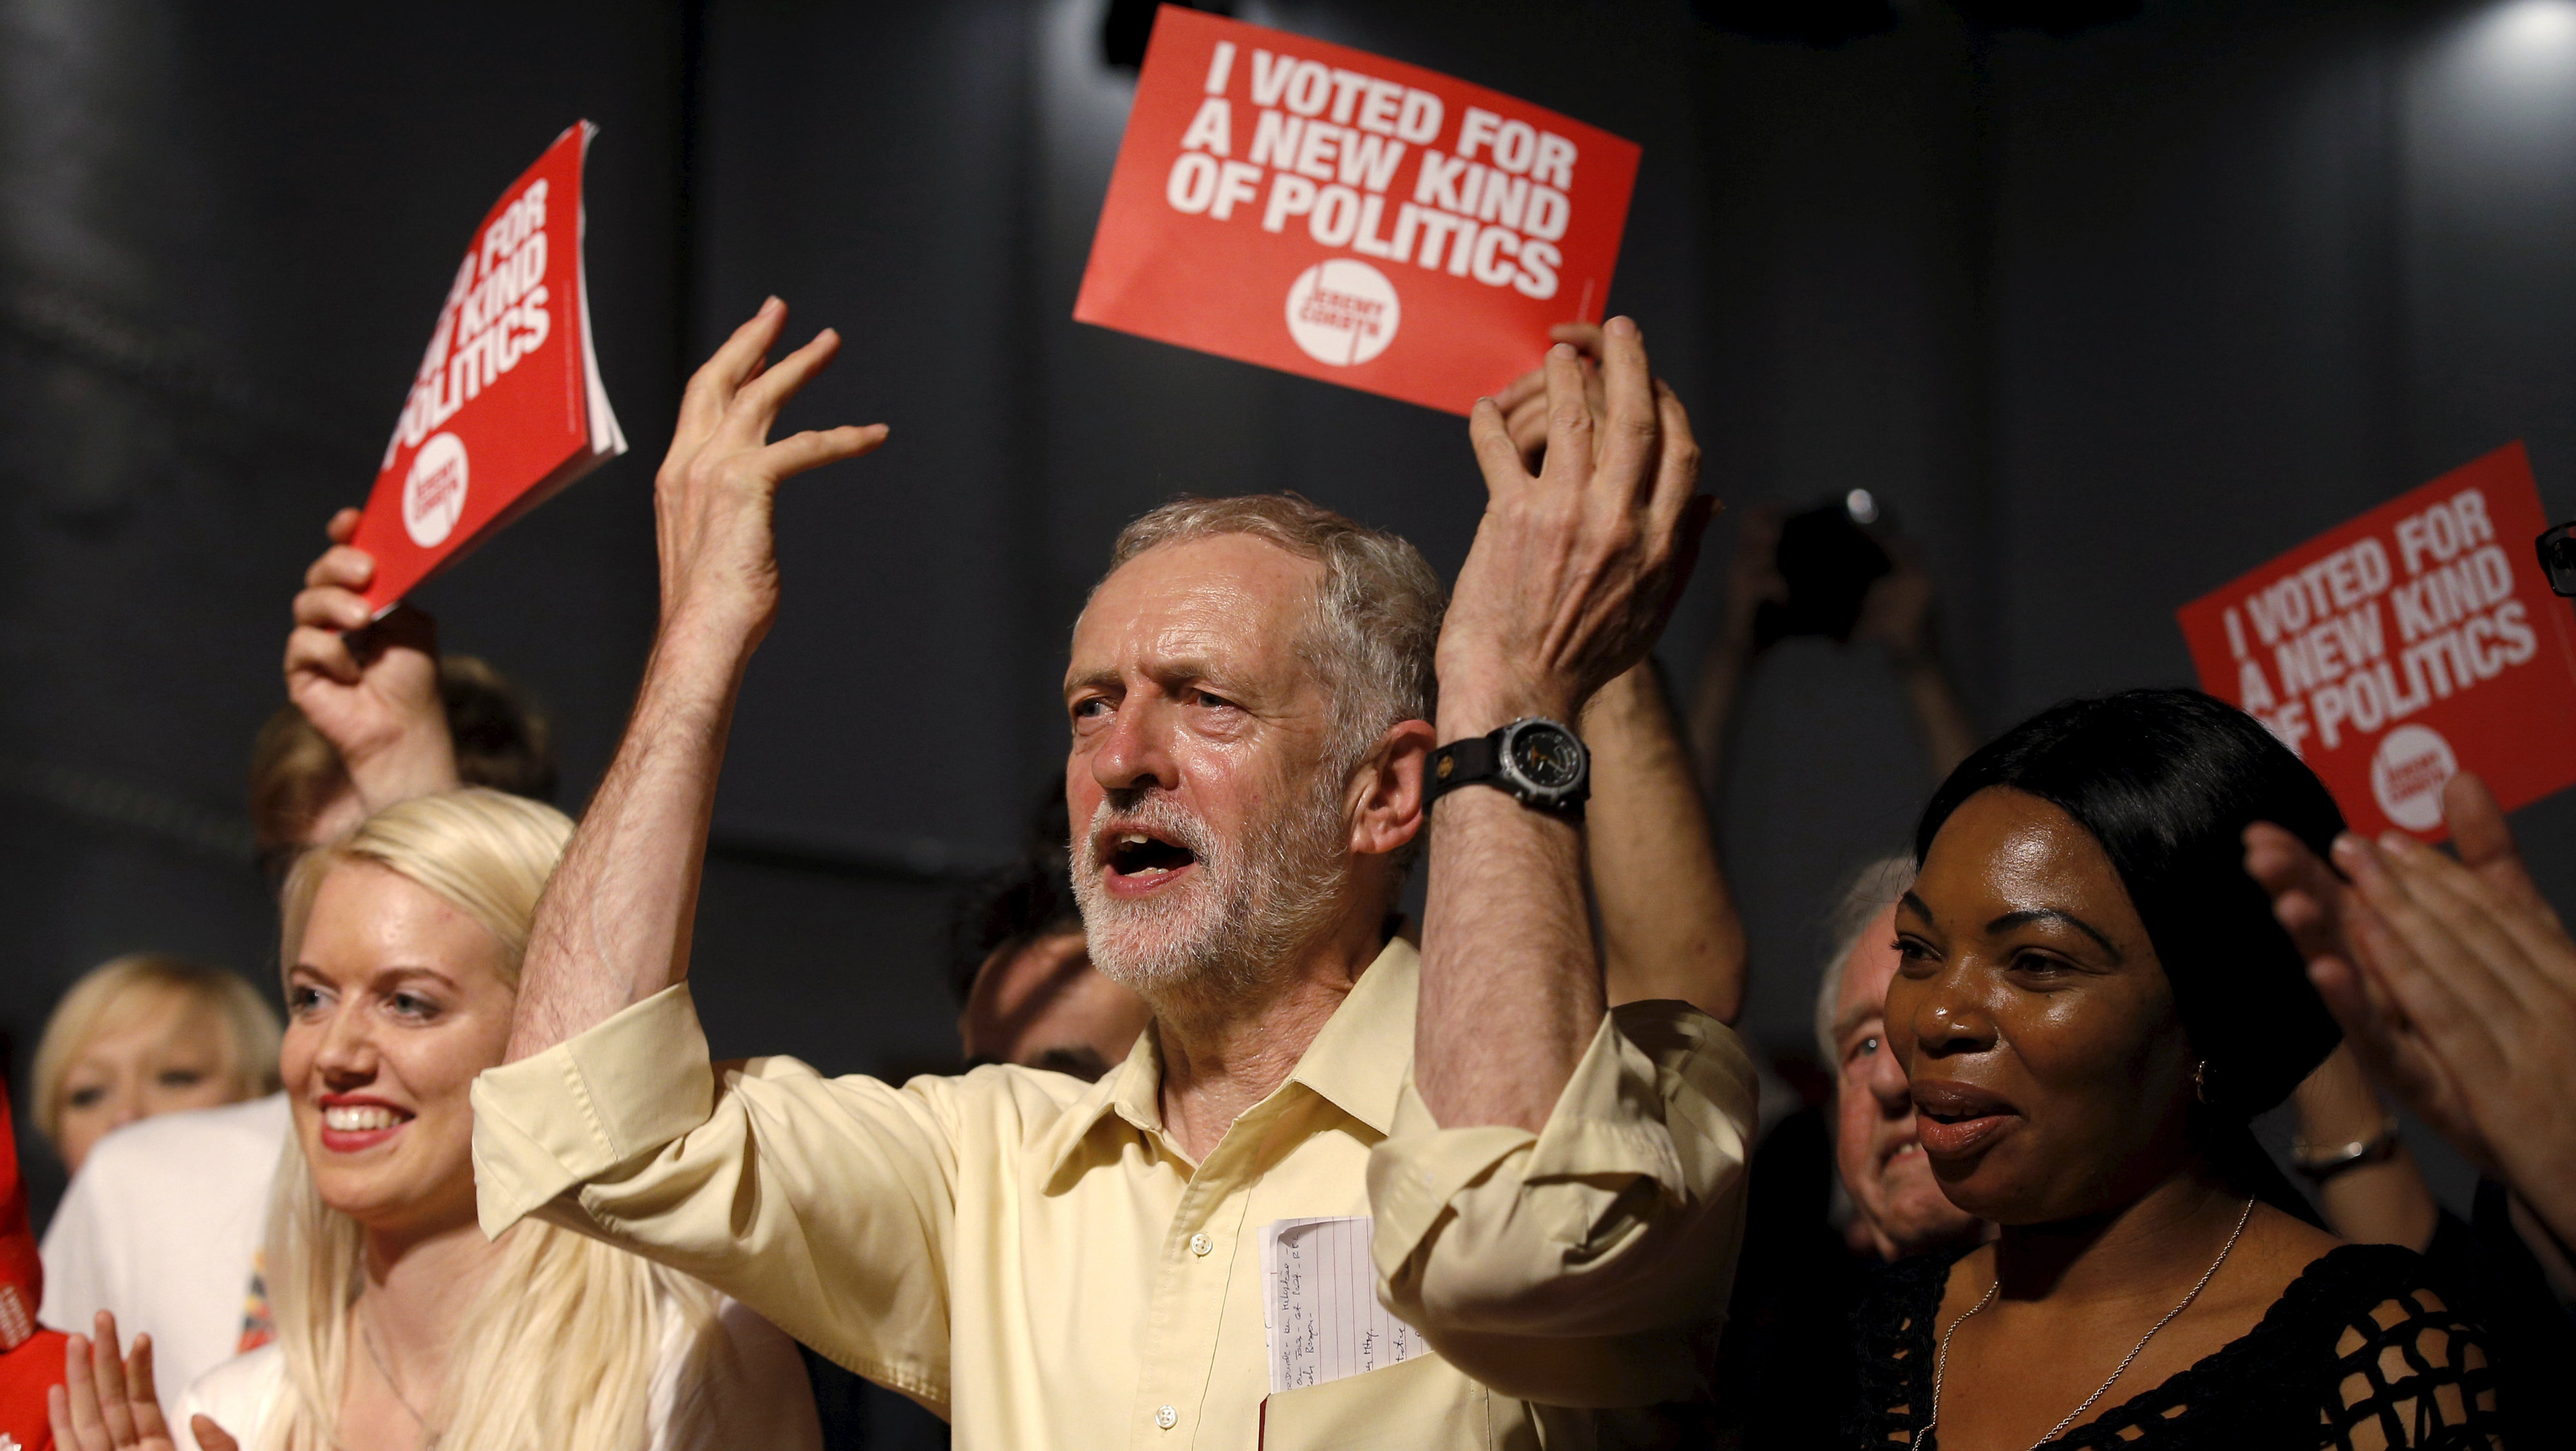 Labour Party leadership candidate Jeremy Corbyn gestures during a rally in London.